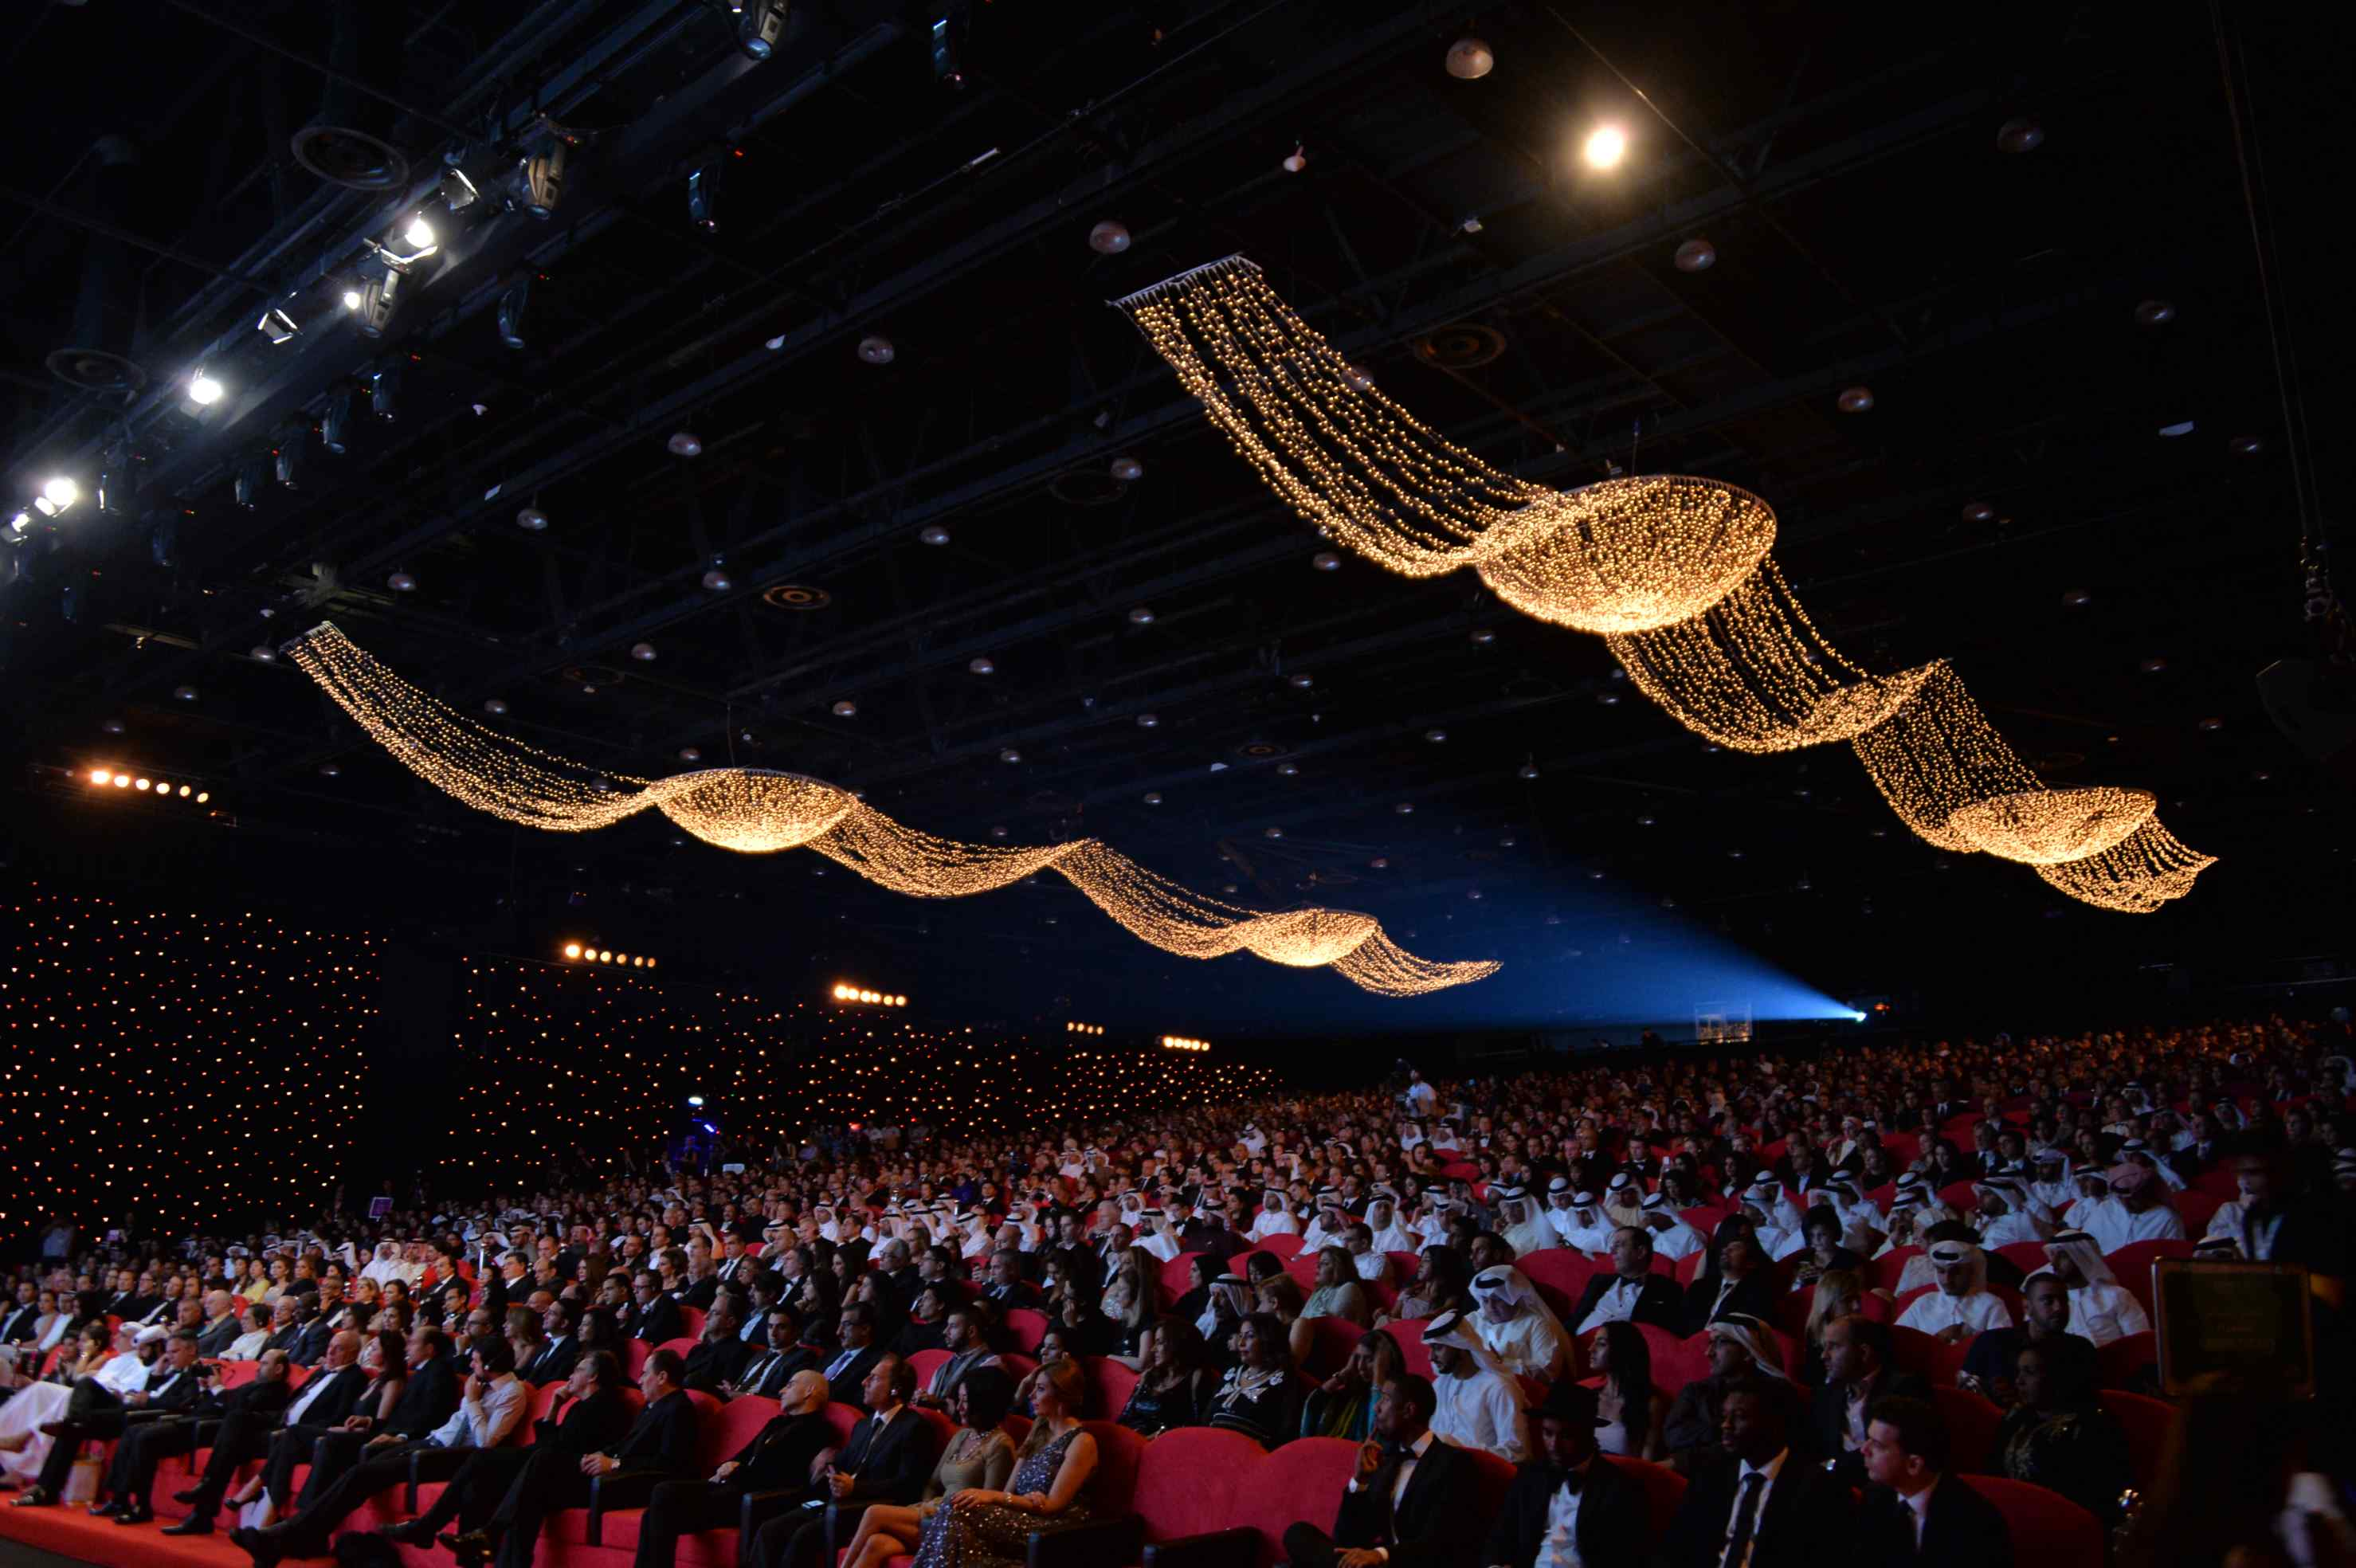 Dubai International Film Festival has celebrated the magic of cinema over the past 14 years, with almost 2,000 screenings including 500 films from the Arab world